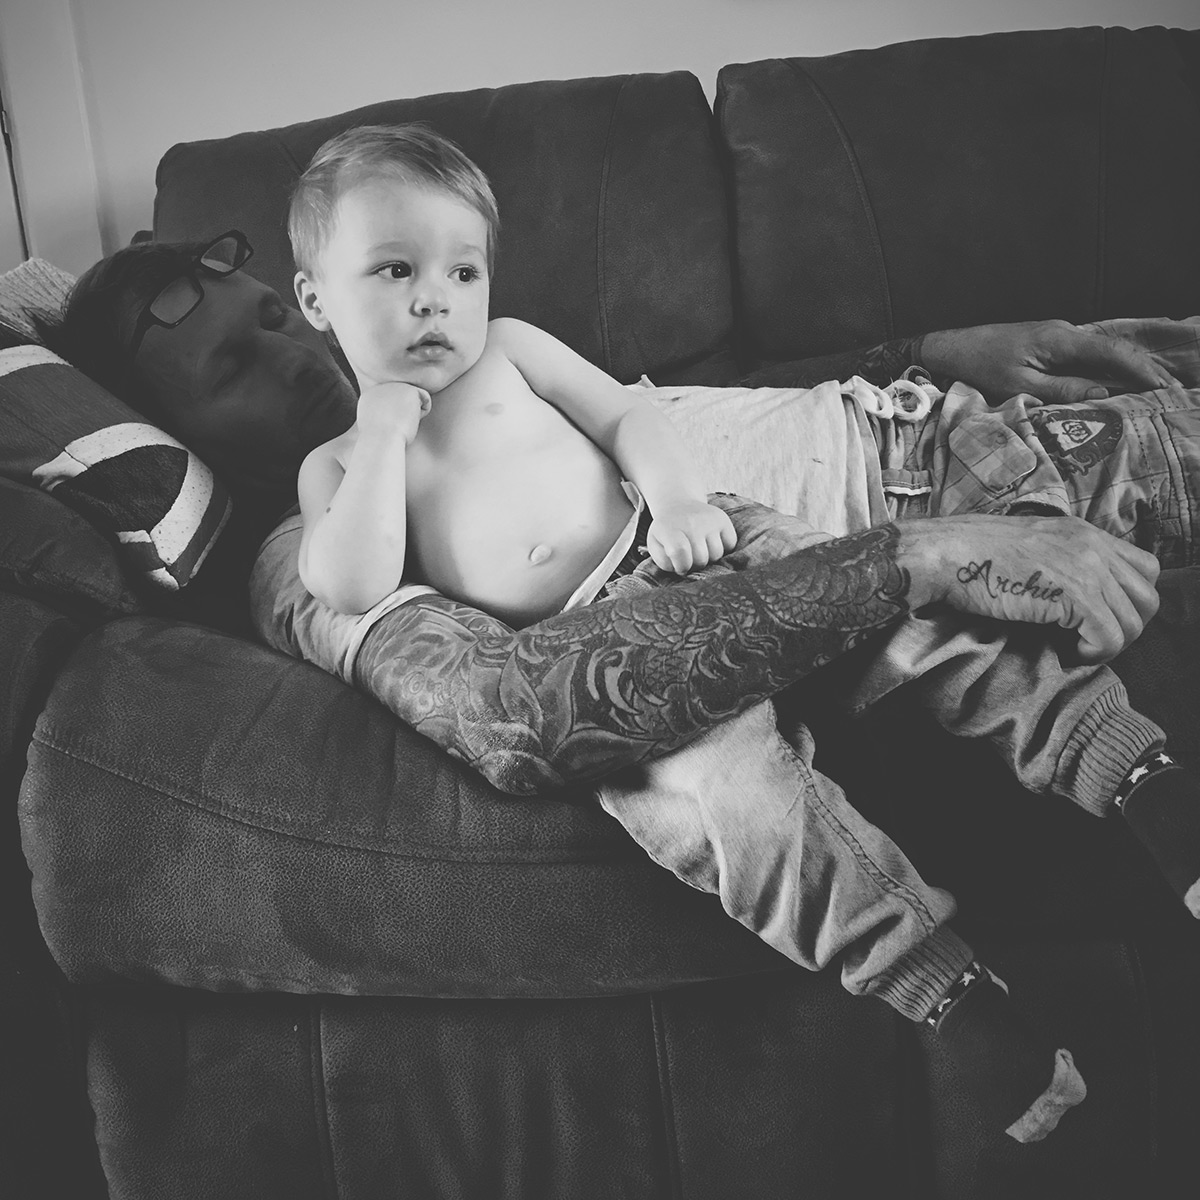 Our month in insta-snaps; April 2016 - Toddler watching TV whilst cuddling with Grandad who has name tattoo on his hand